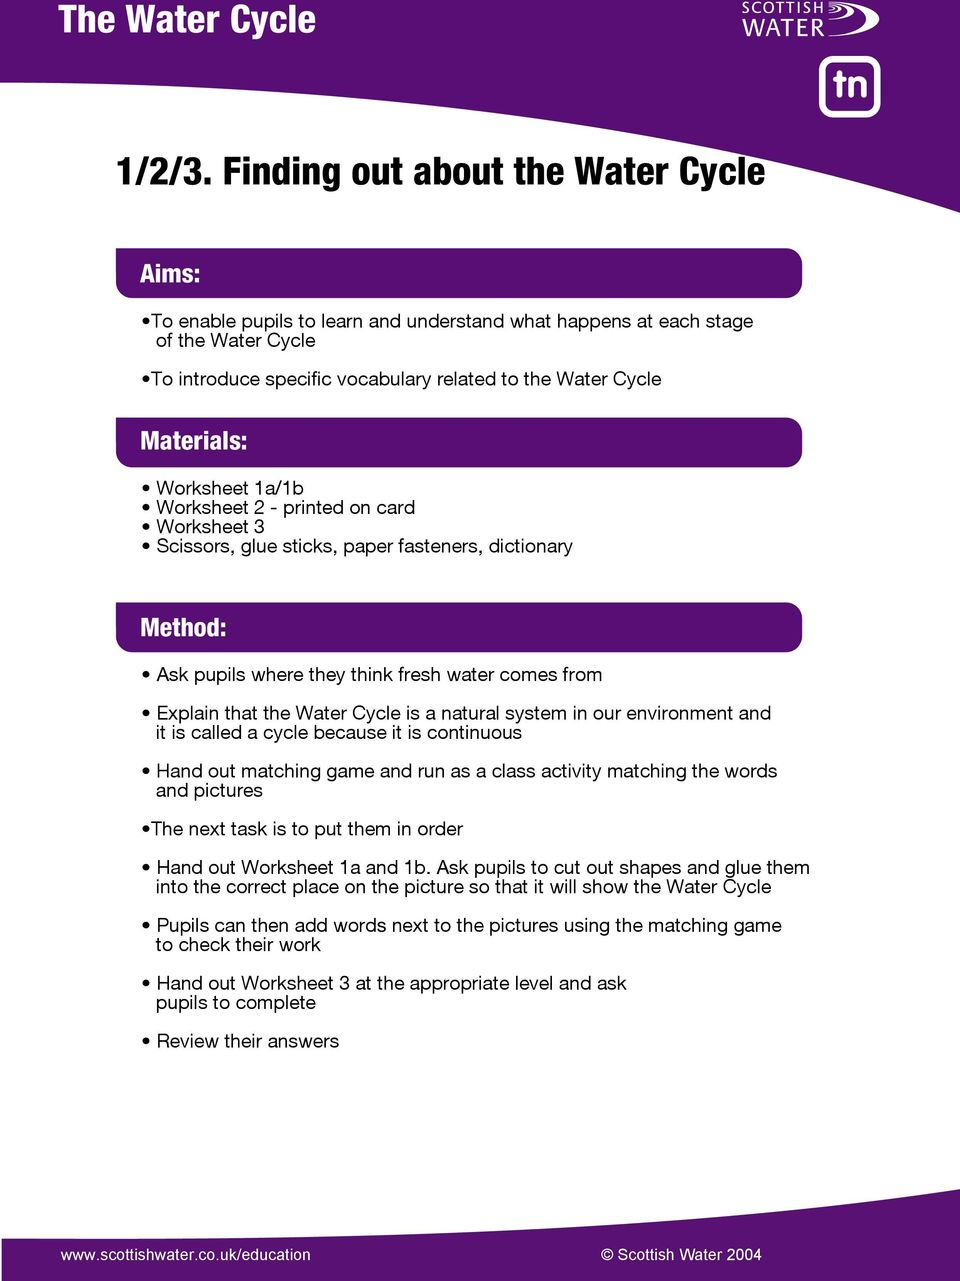 Worksheet 1a/1b Worksheet 2 - printed on card Worksheet 3 Scissors, glue sticks, paper fasteners, dictionary Method: Ask pupils where they think fresh water comes from Explain that the Water Cycle is